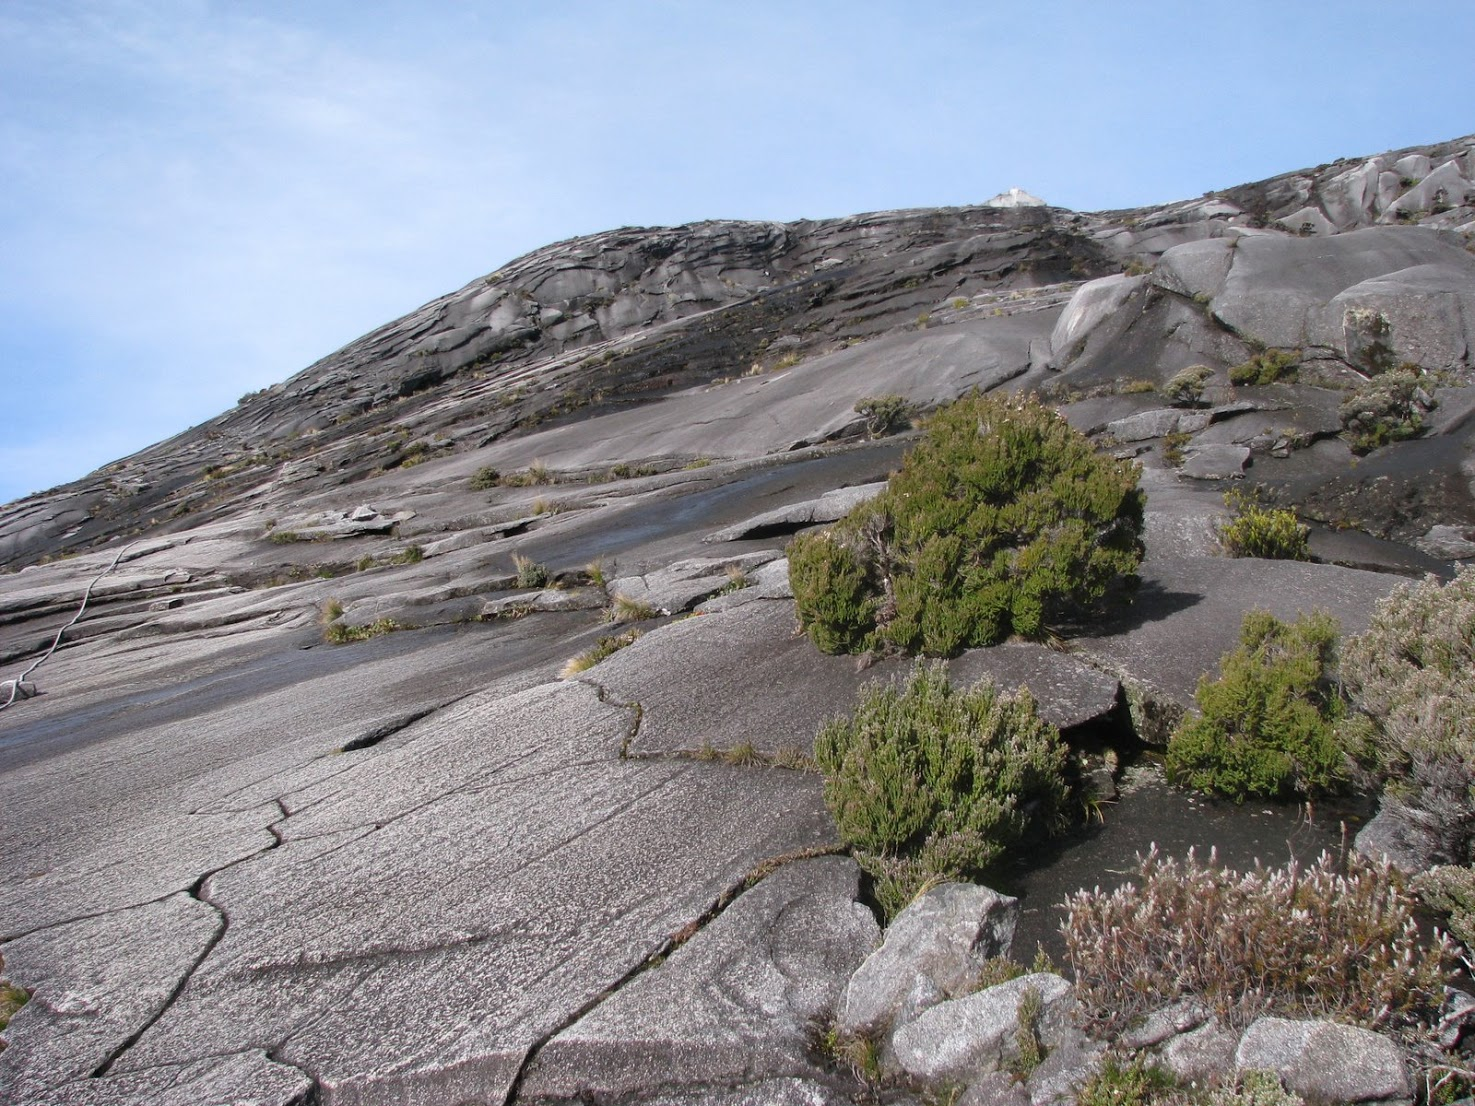 Kinabalu's final ascent, submitted by Sarabjit Singh